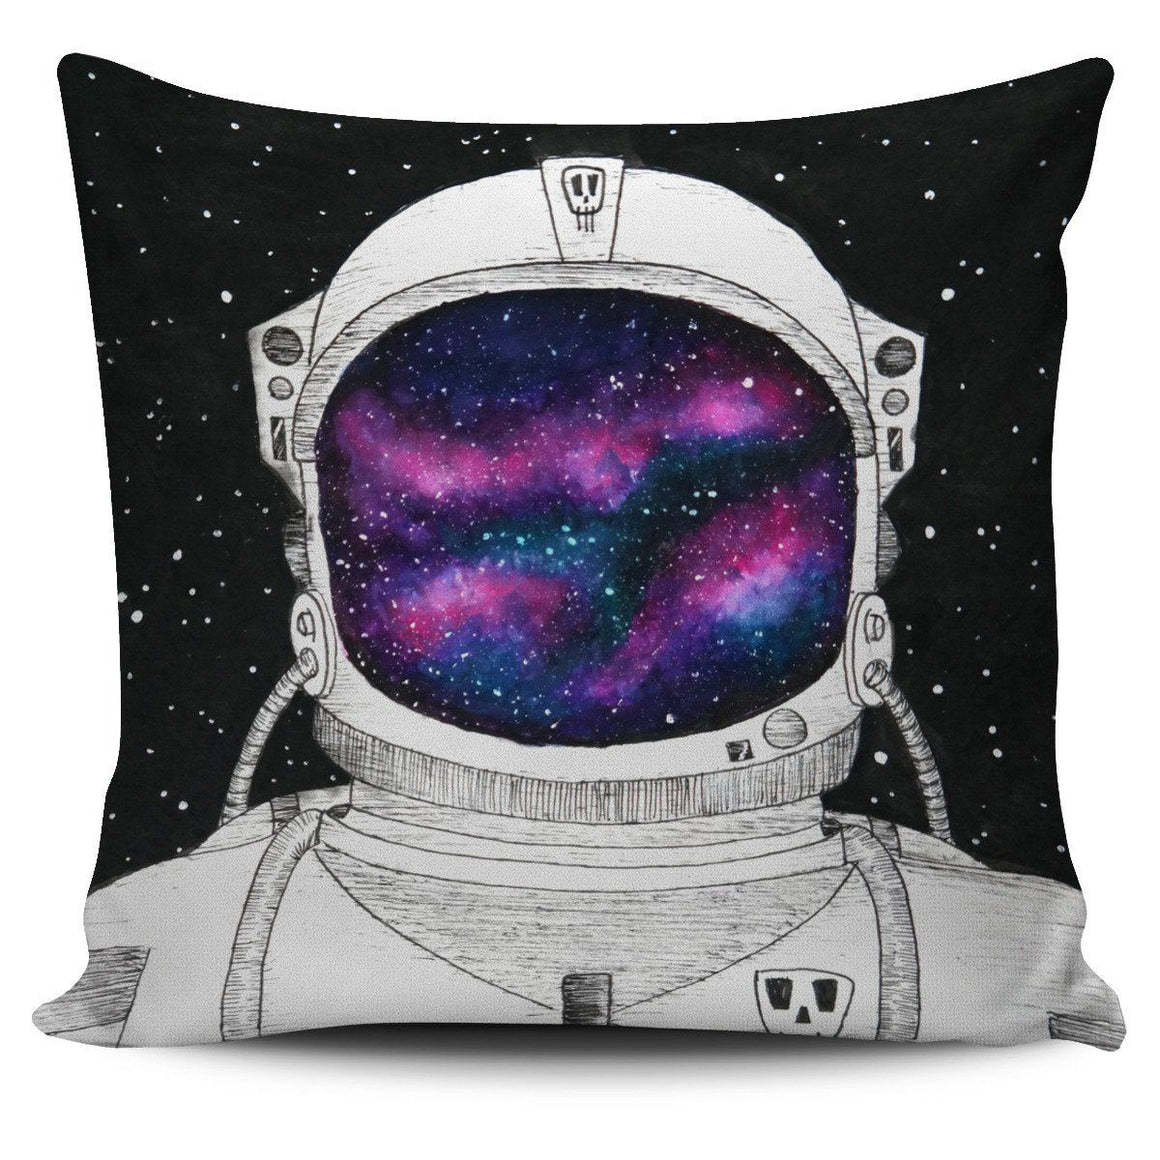 Space Nasa Cat Pillow Covers